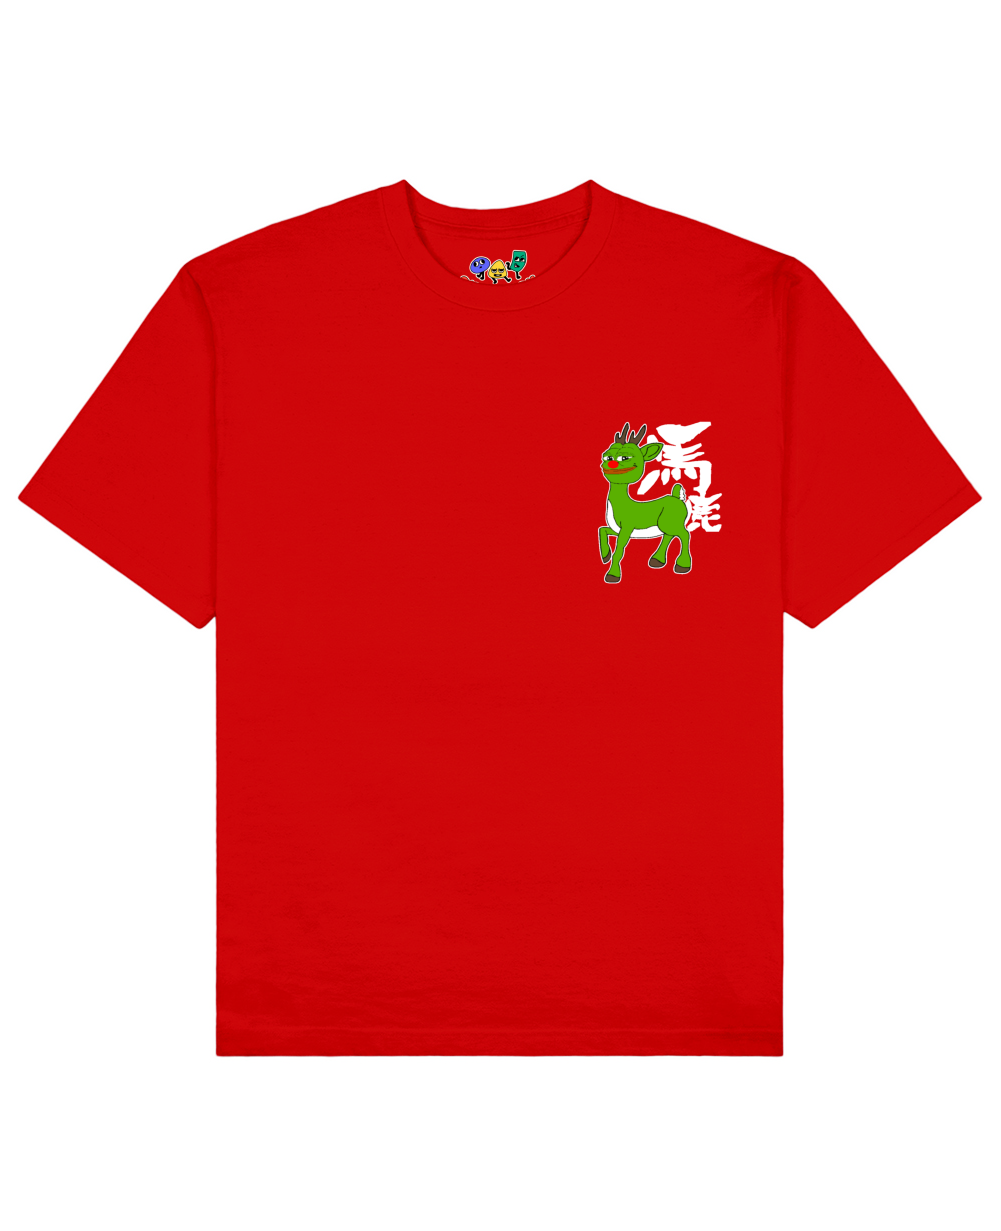 BAKA Pepe The Frog Print T-Shirt in Red